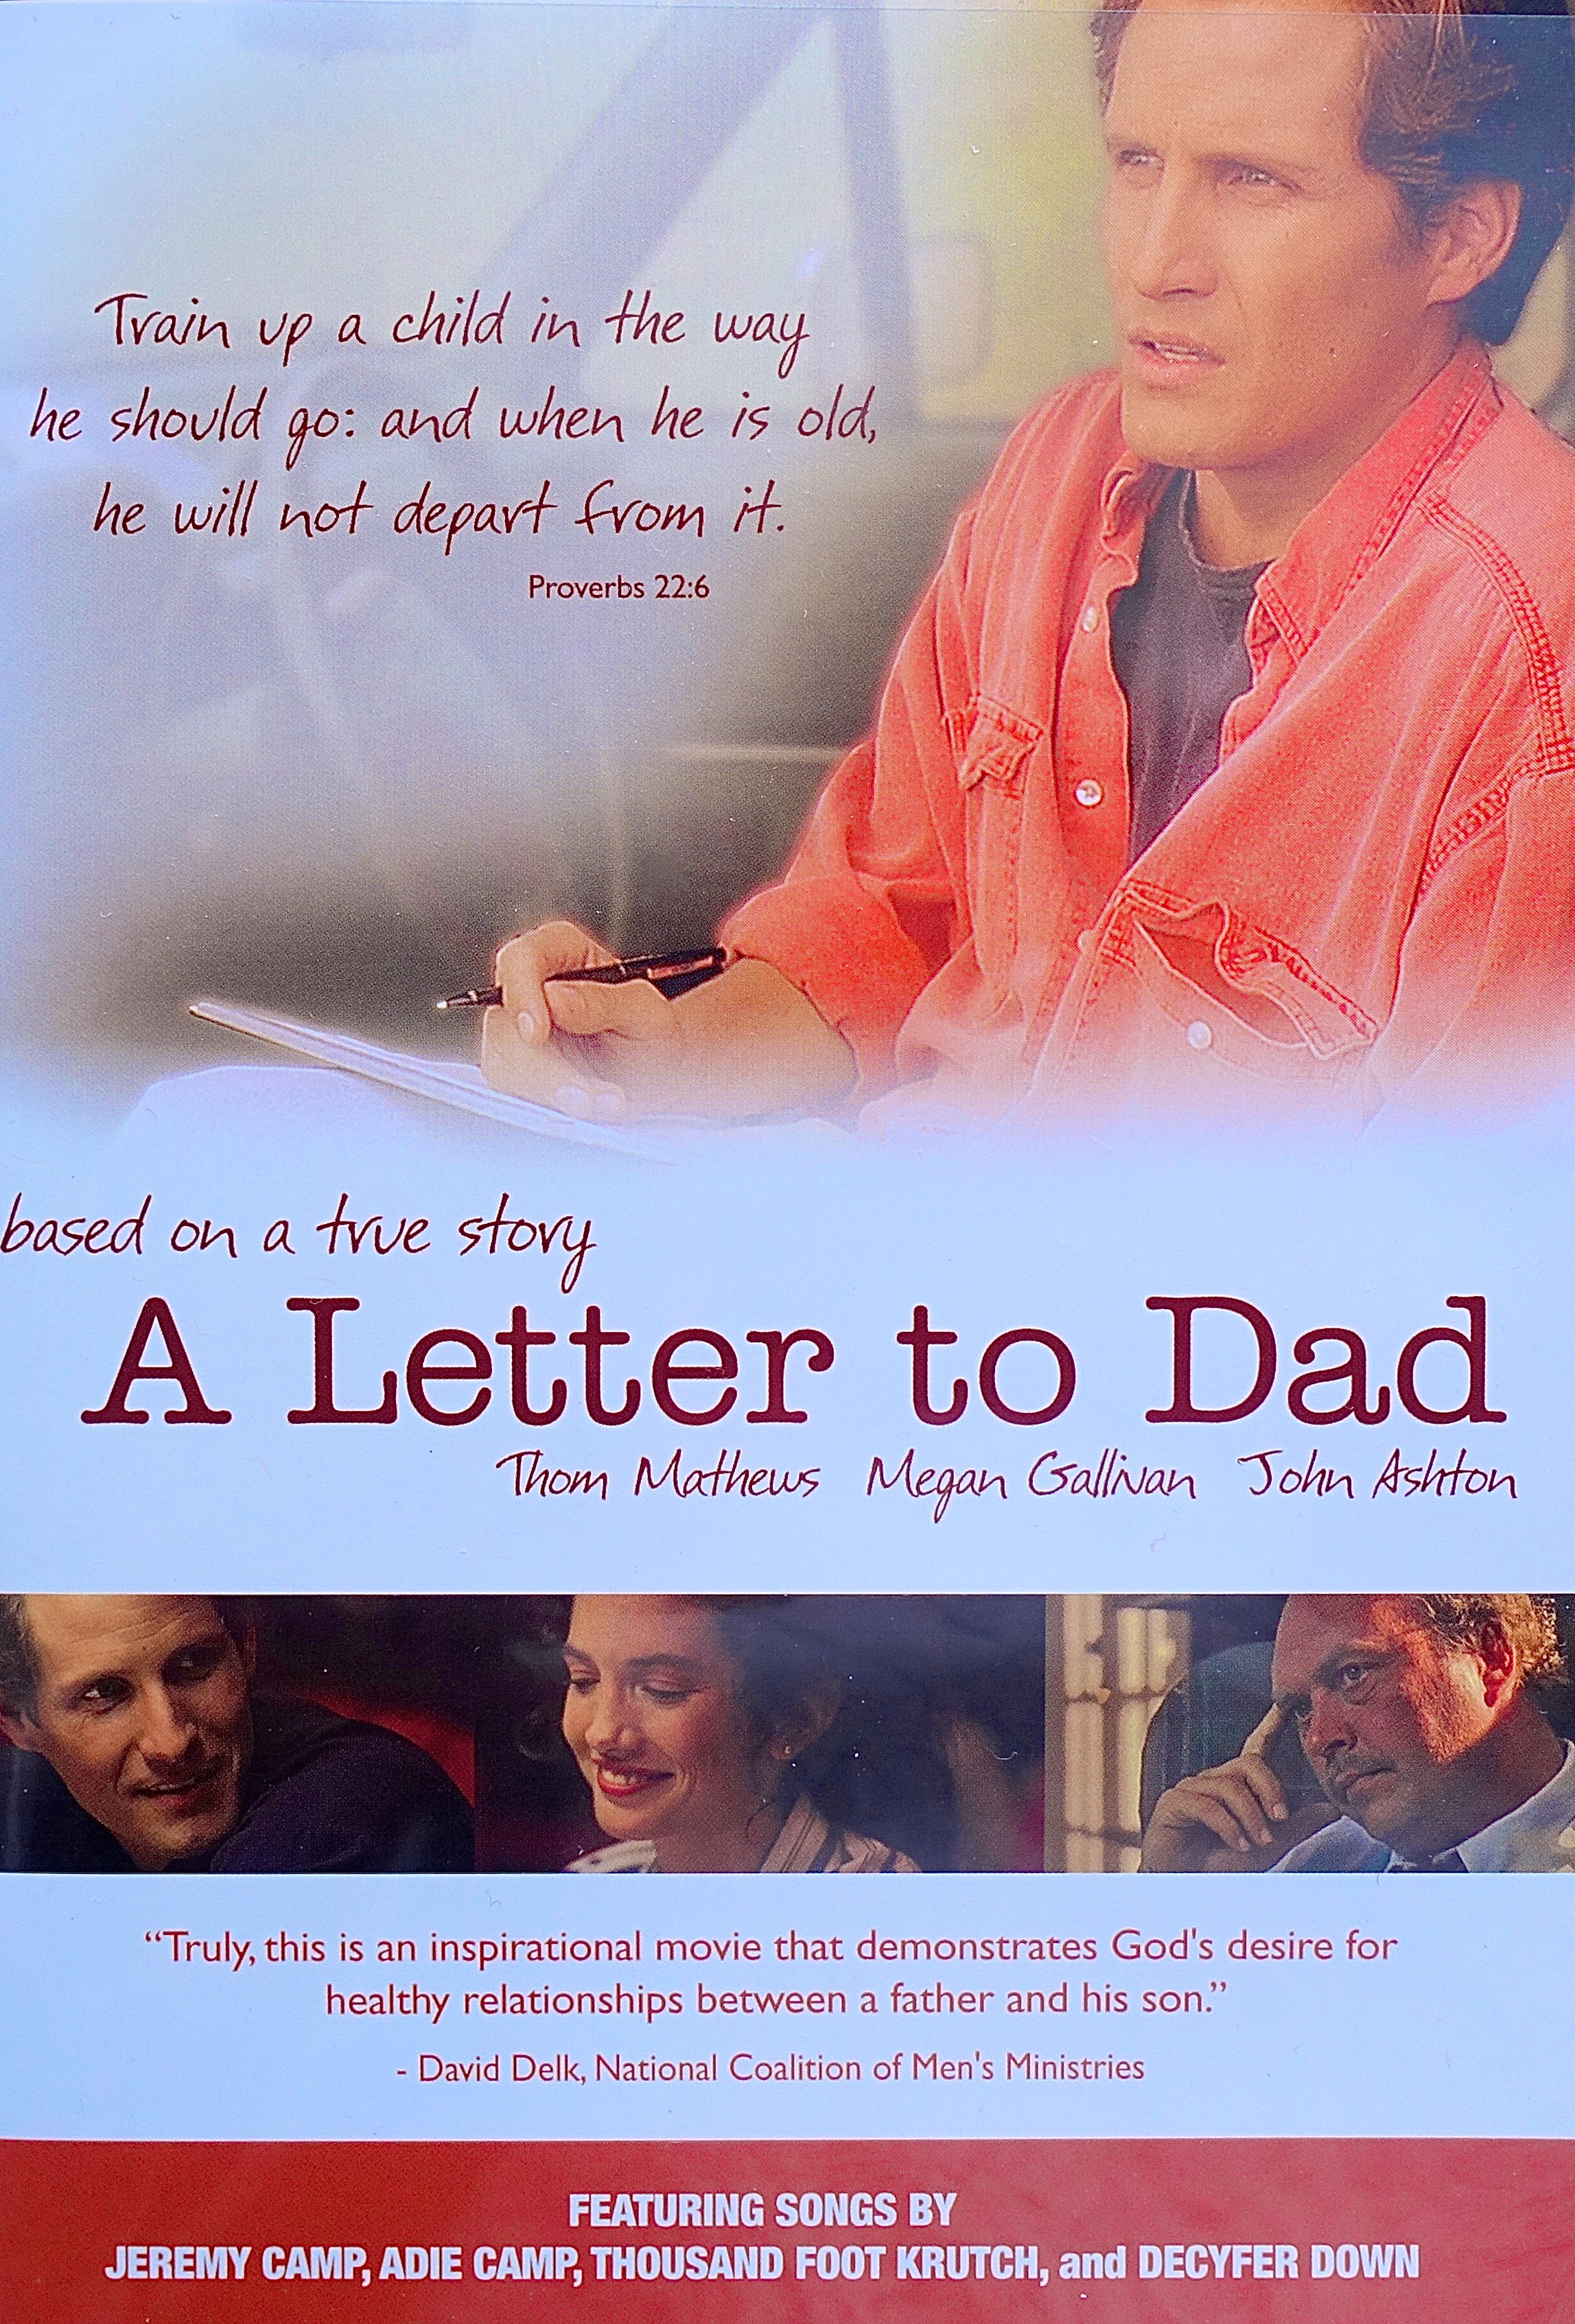 Have You Written Or Seen A Letter To Dad  Summer Setting